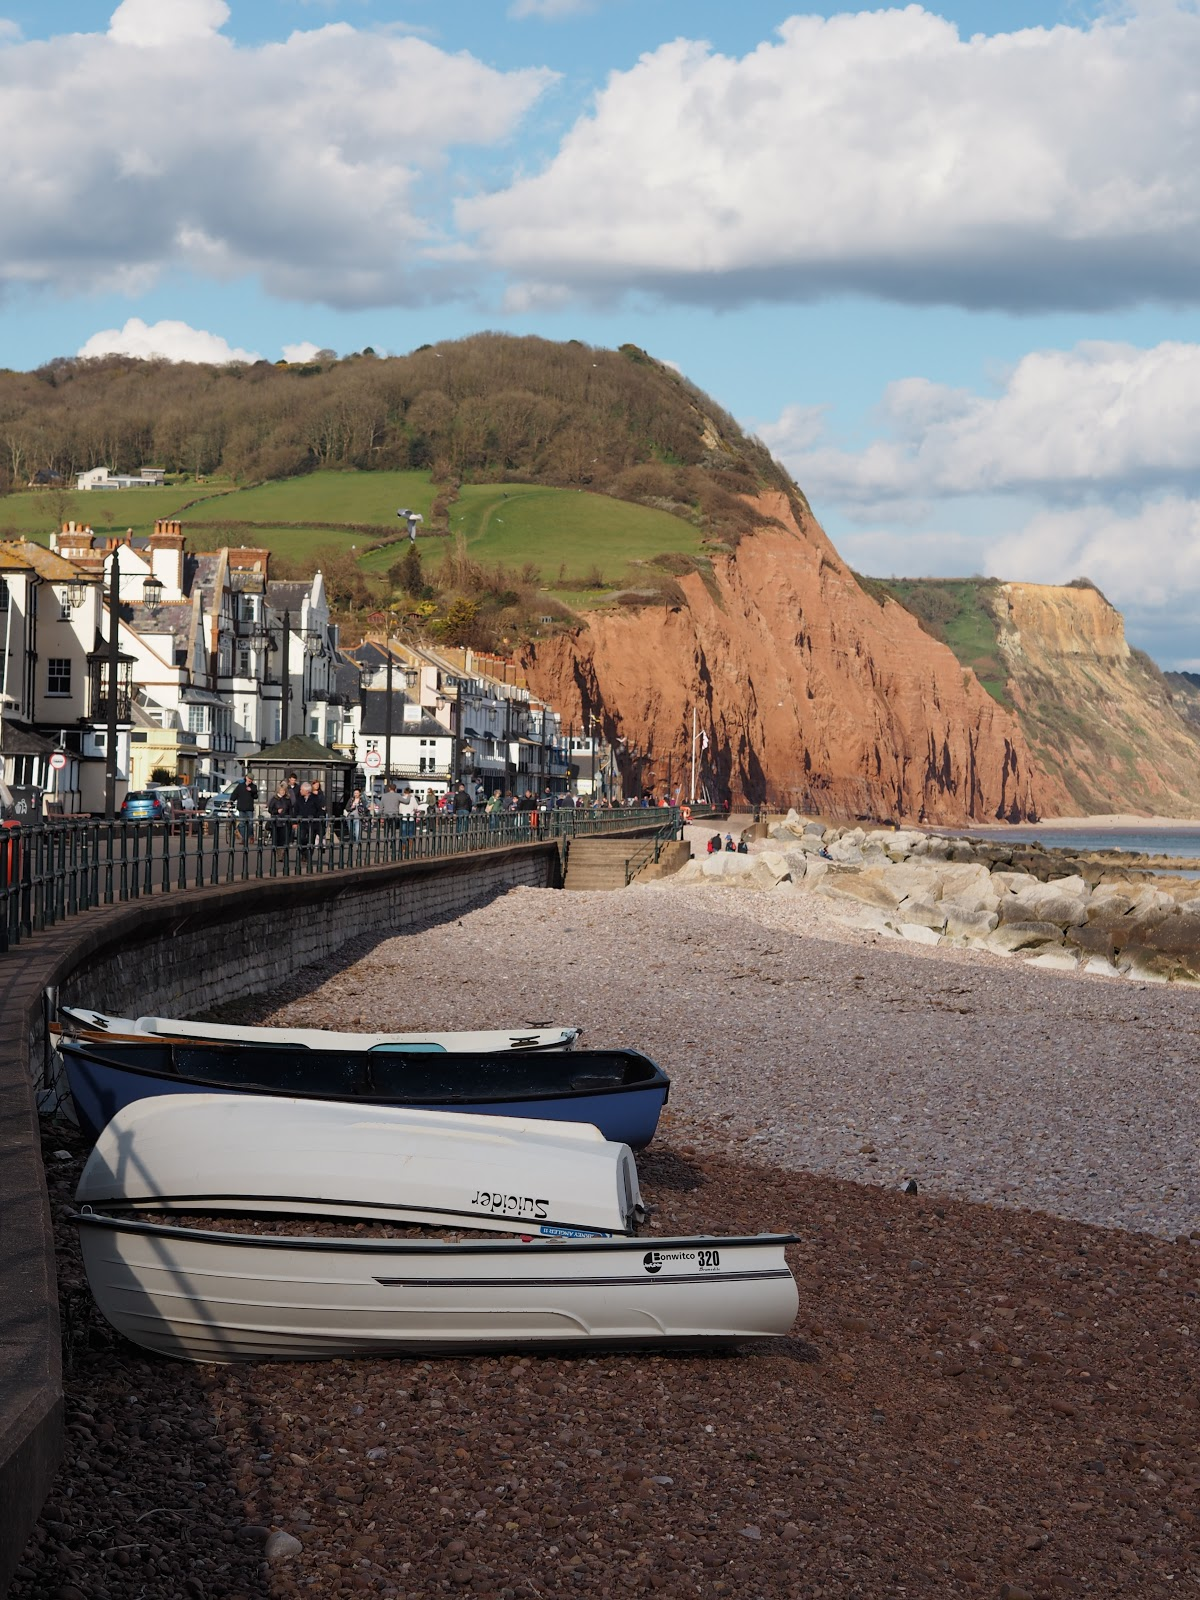 Boats on the pebble beach at Sidmouth with the Jurassic Coast behind and sea, Sidmouth, Devon